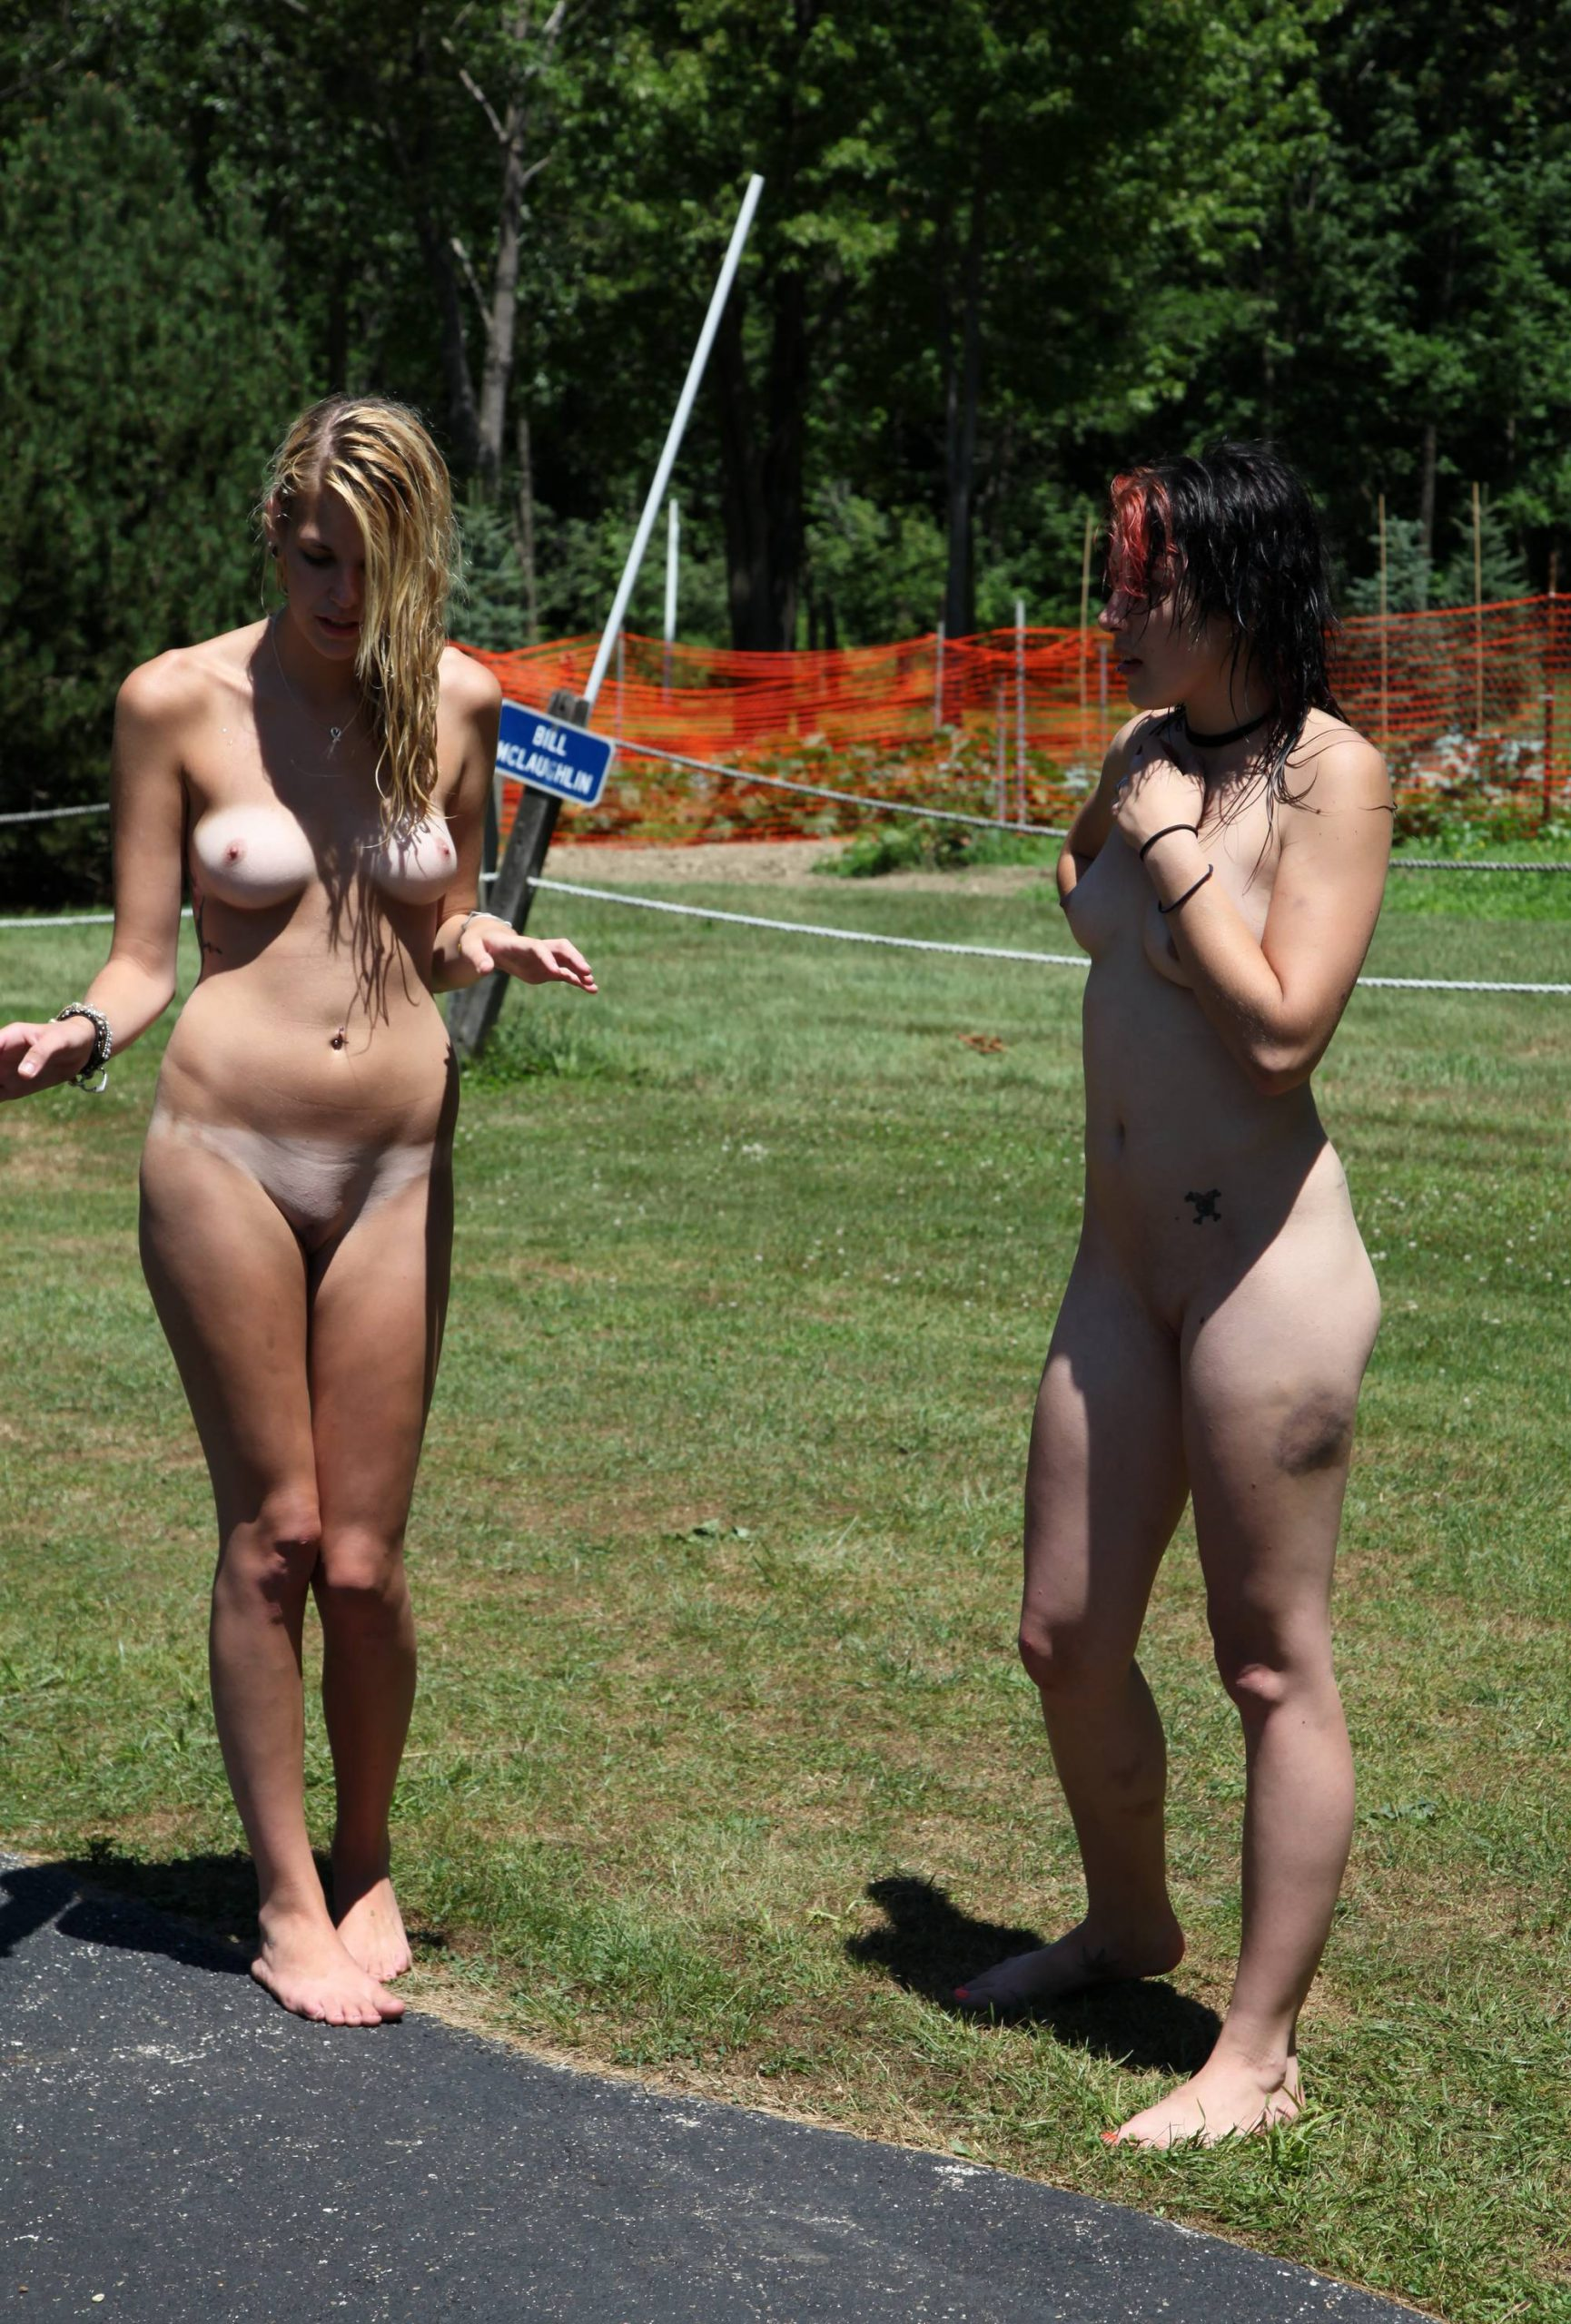 Pure Nudism Images-Grassy Green Delights - 4